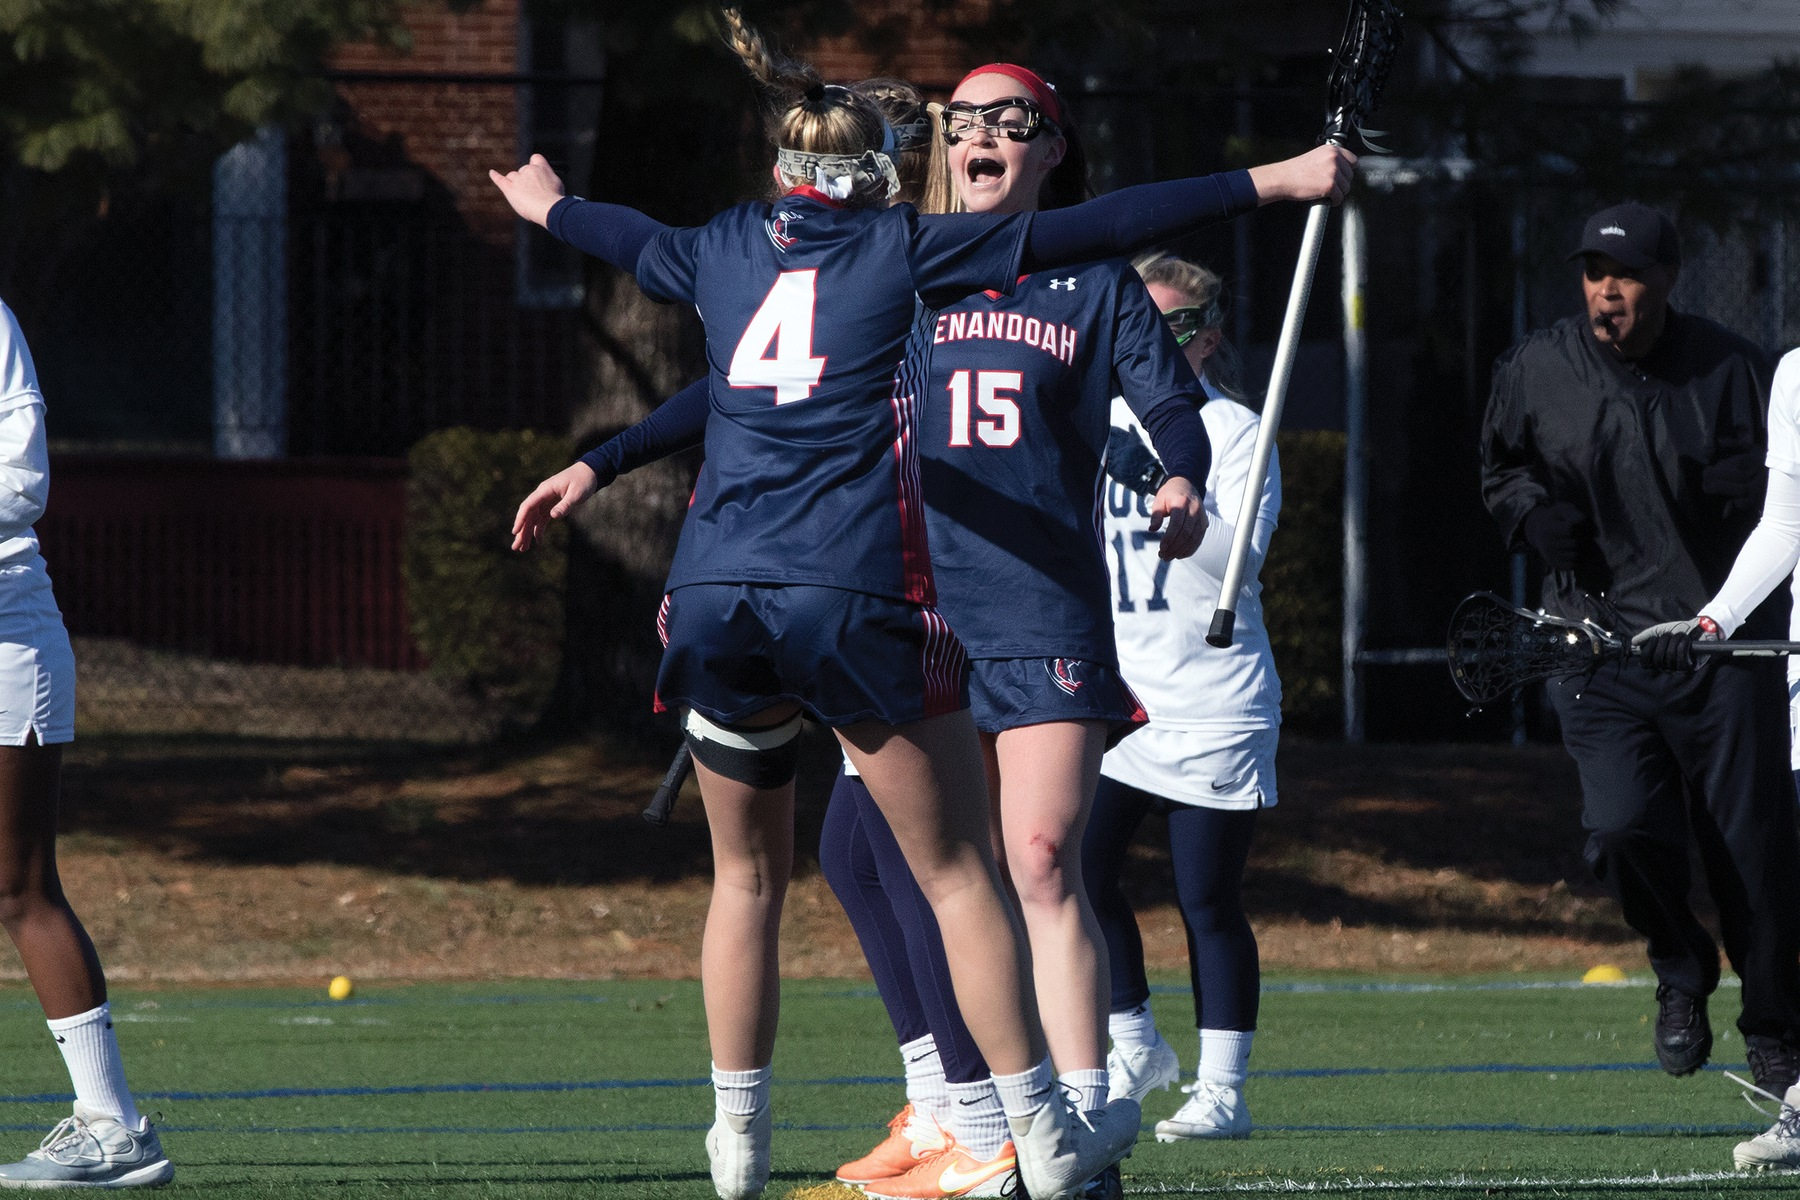 Anna Baxter scored the first goal for Shenandoah on Sunday afternoon's 19-6 victory over Ferrum College to clinch an ODAC playoff berth.